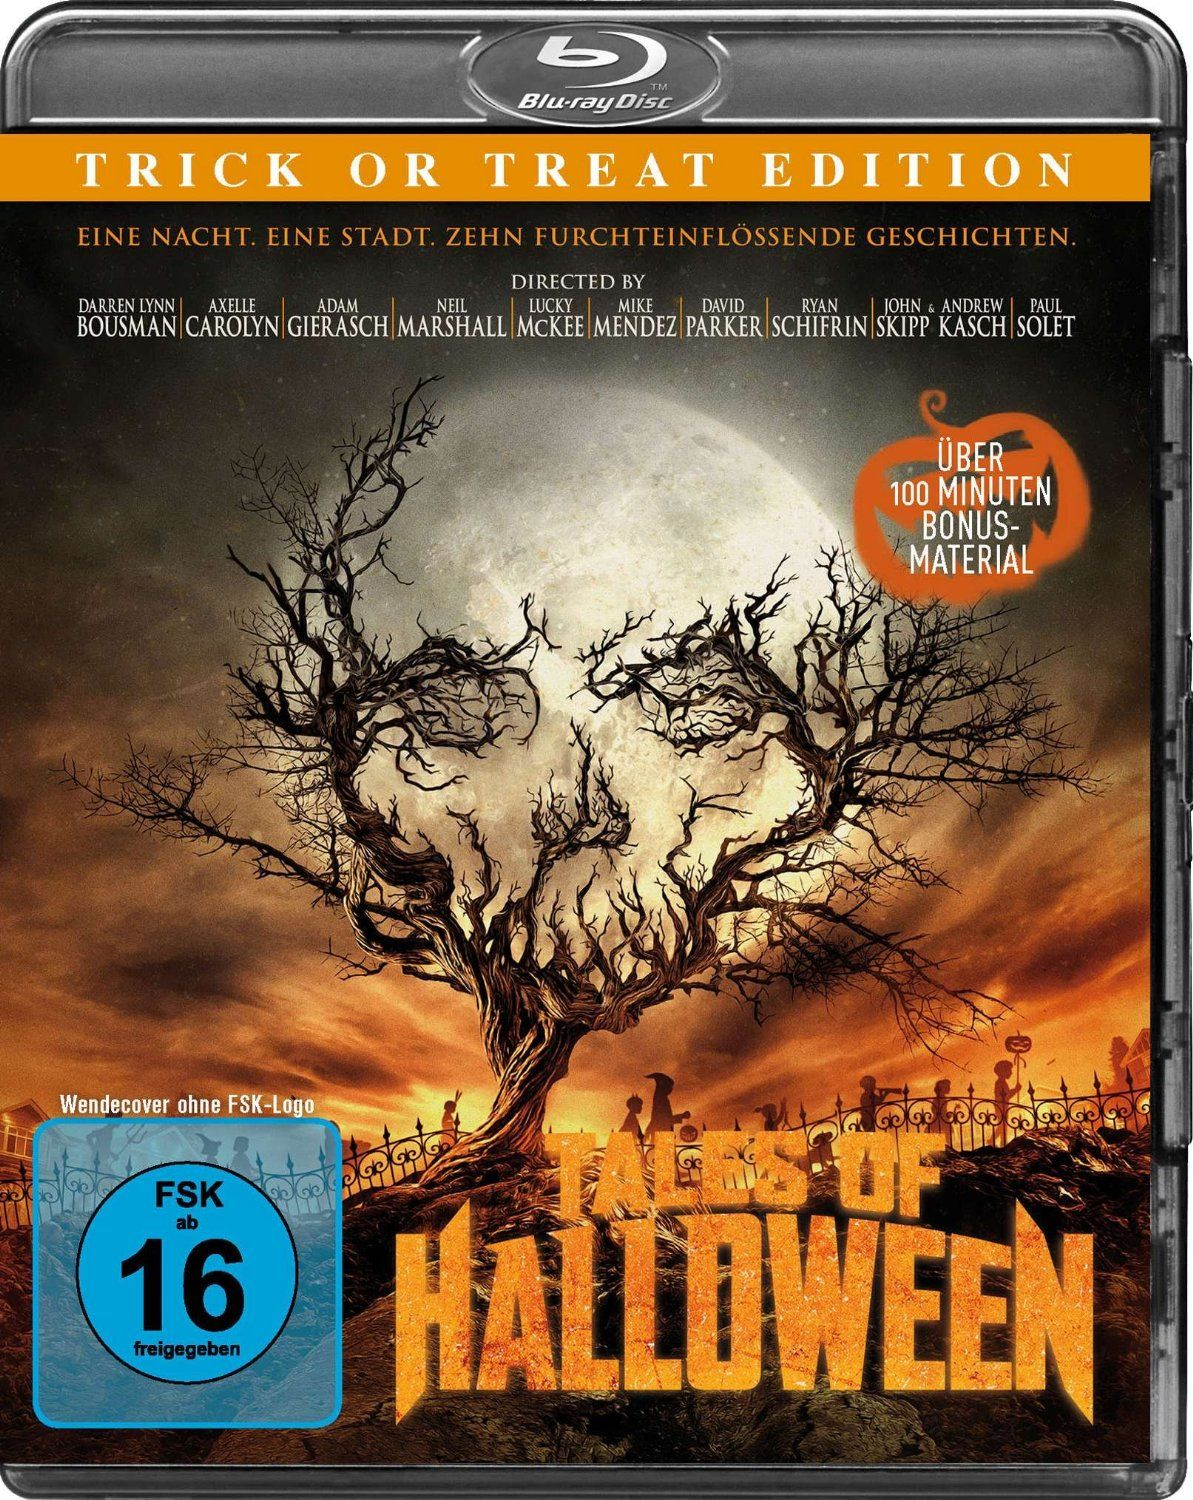 Tales of Halloween (Trick or Treat Edition) (BLURAY)